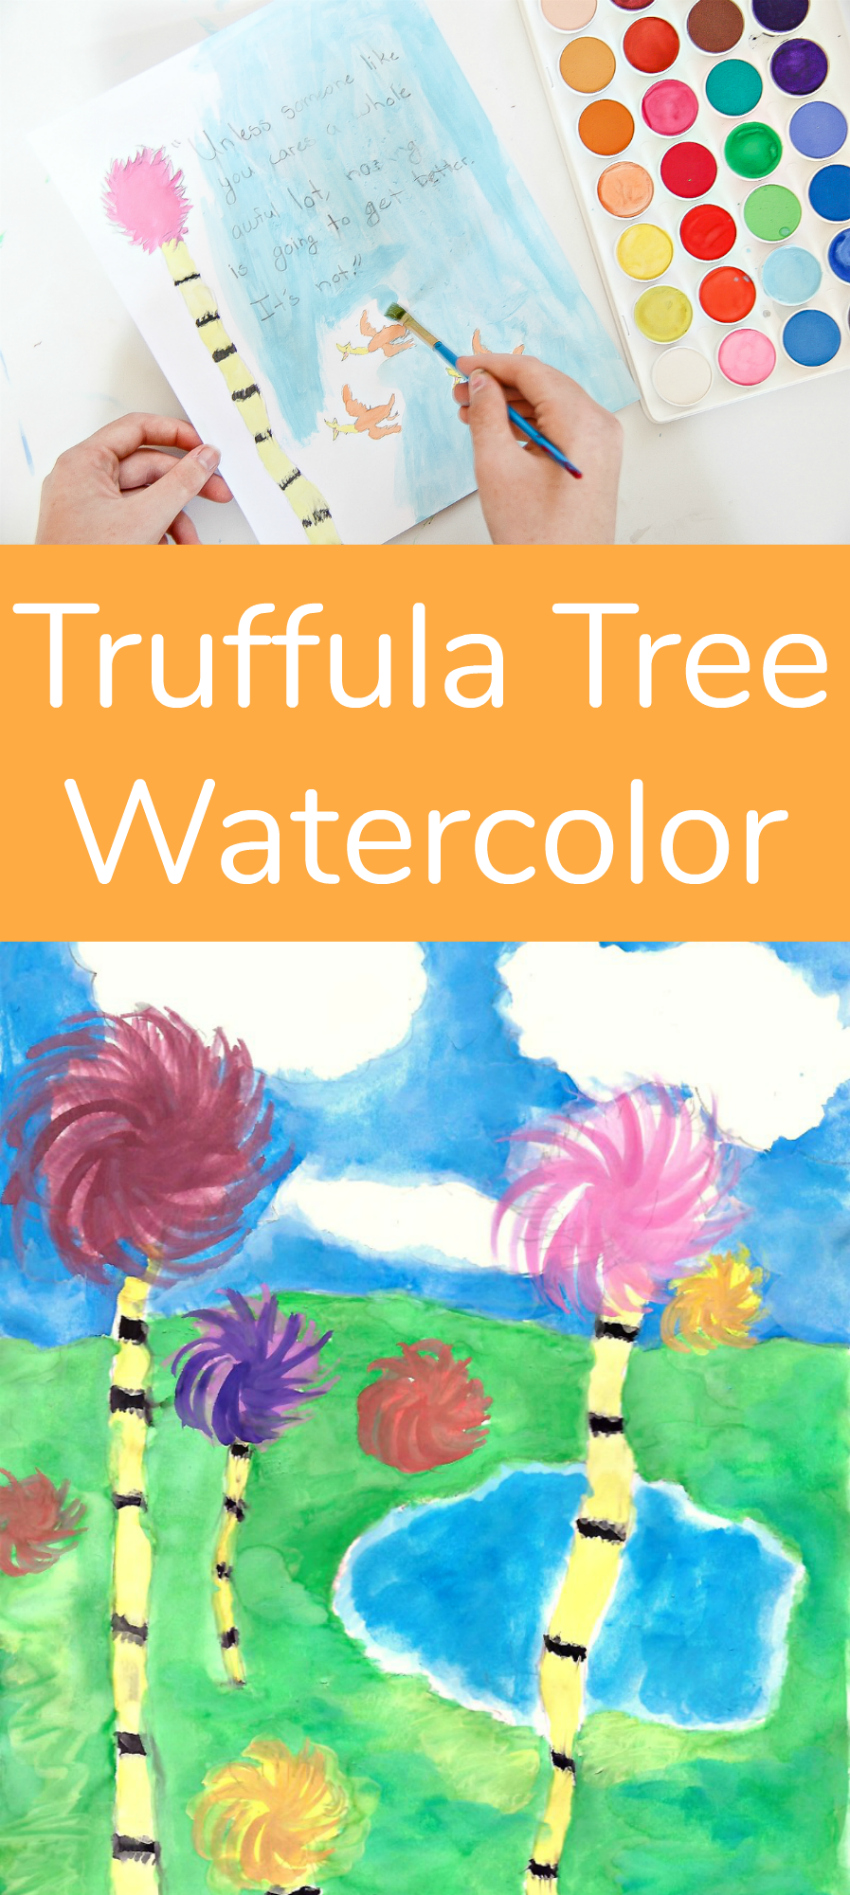 Truffula Tree Watercolor Art Project for kids